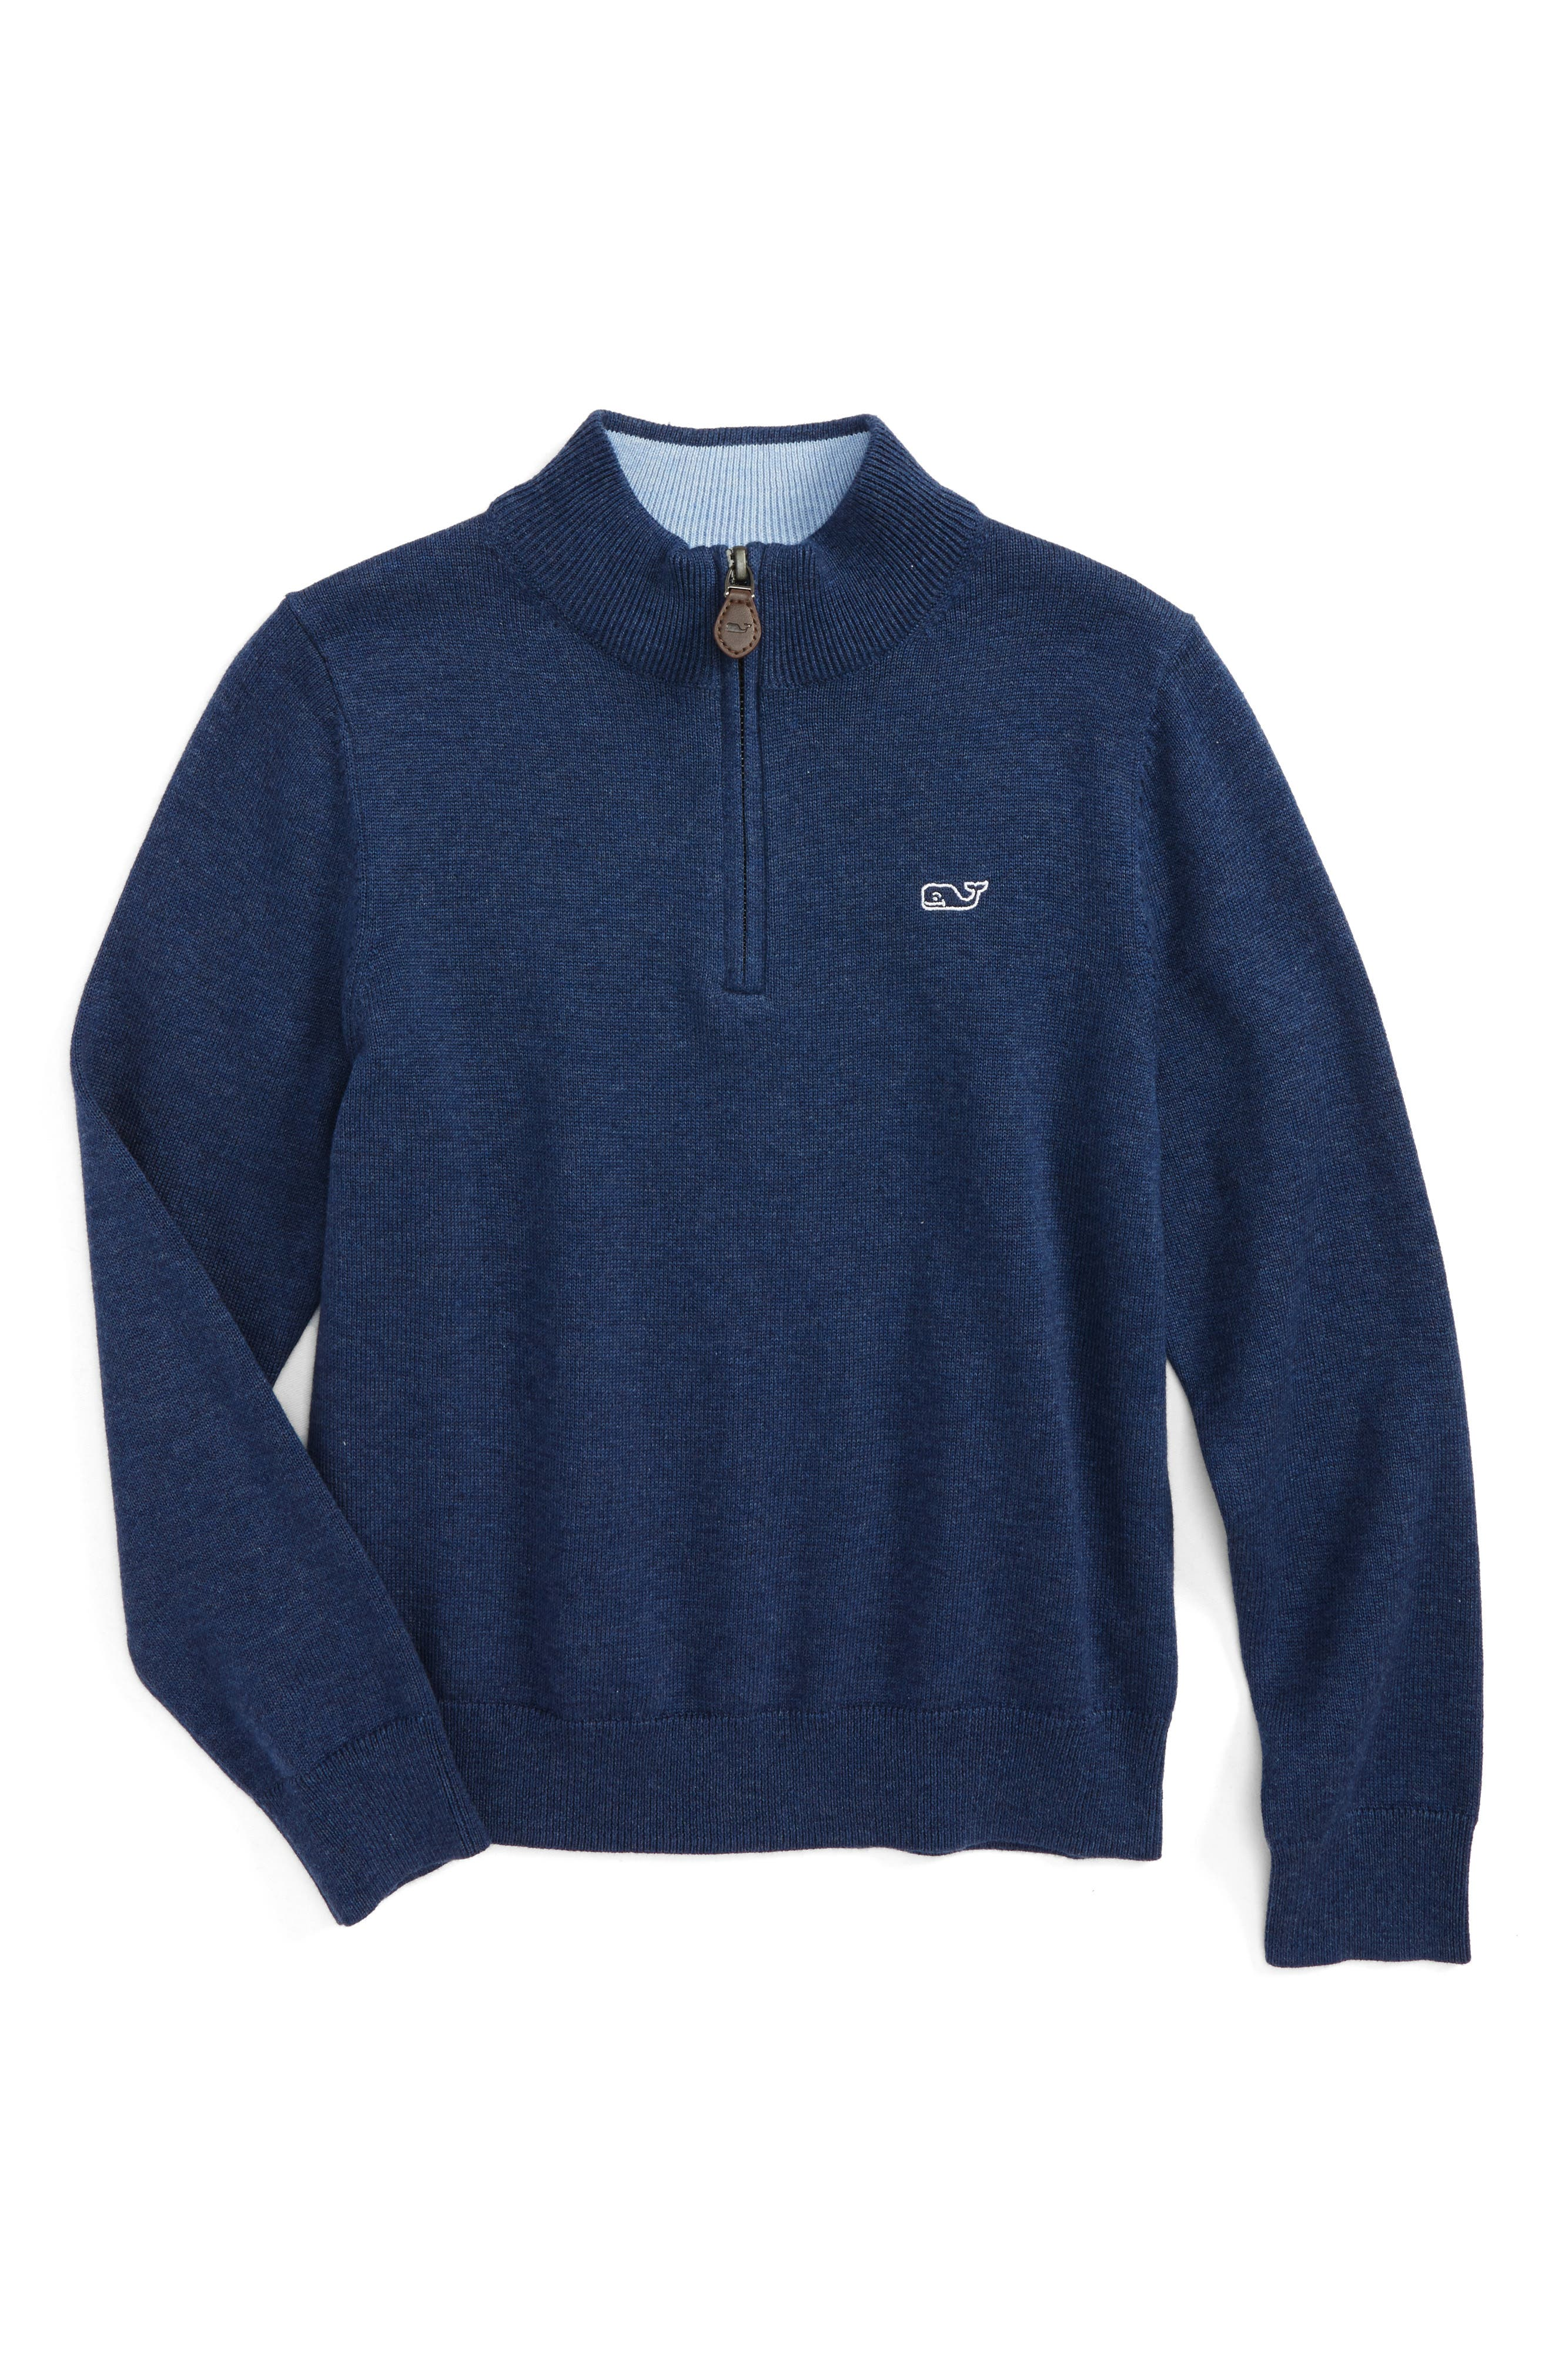 VINEYARD VINES Classic Quarter Zip Sweater